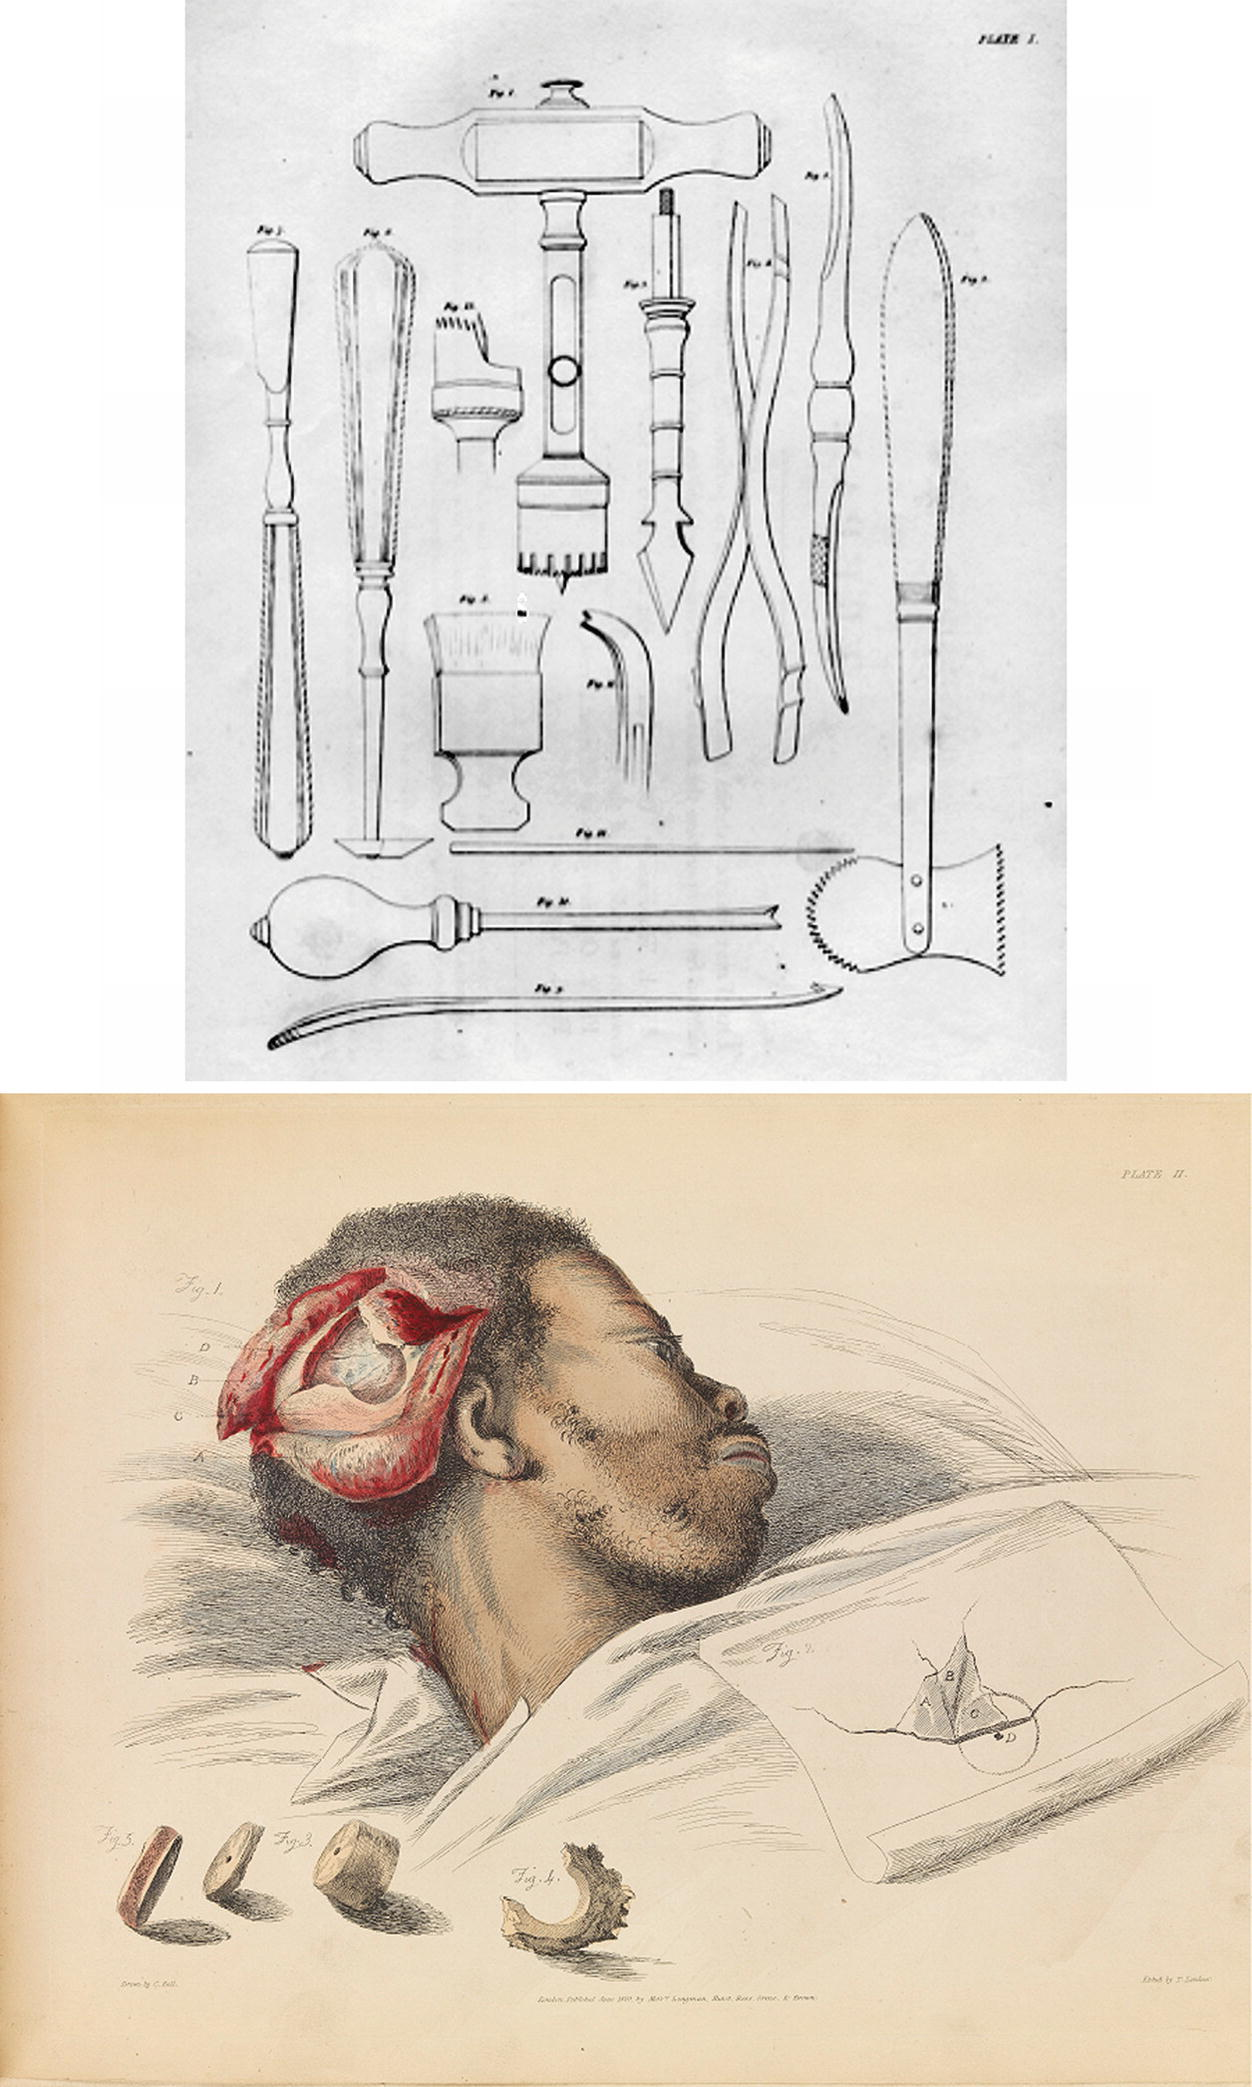 Treatment of war wounds and fractures - with special reference to the closed method as used in the war in Spain